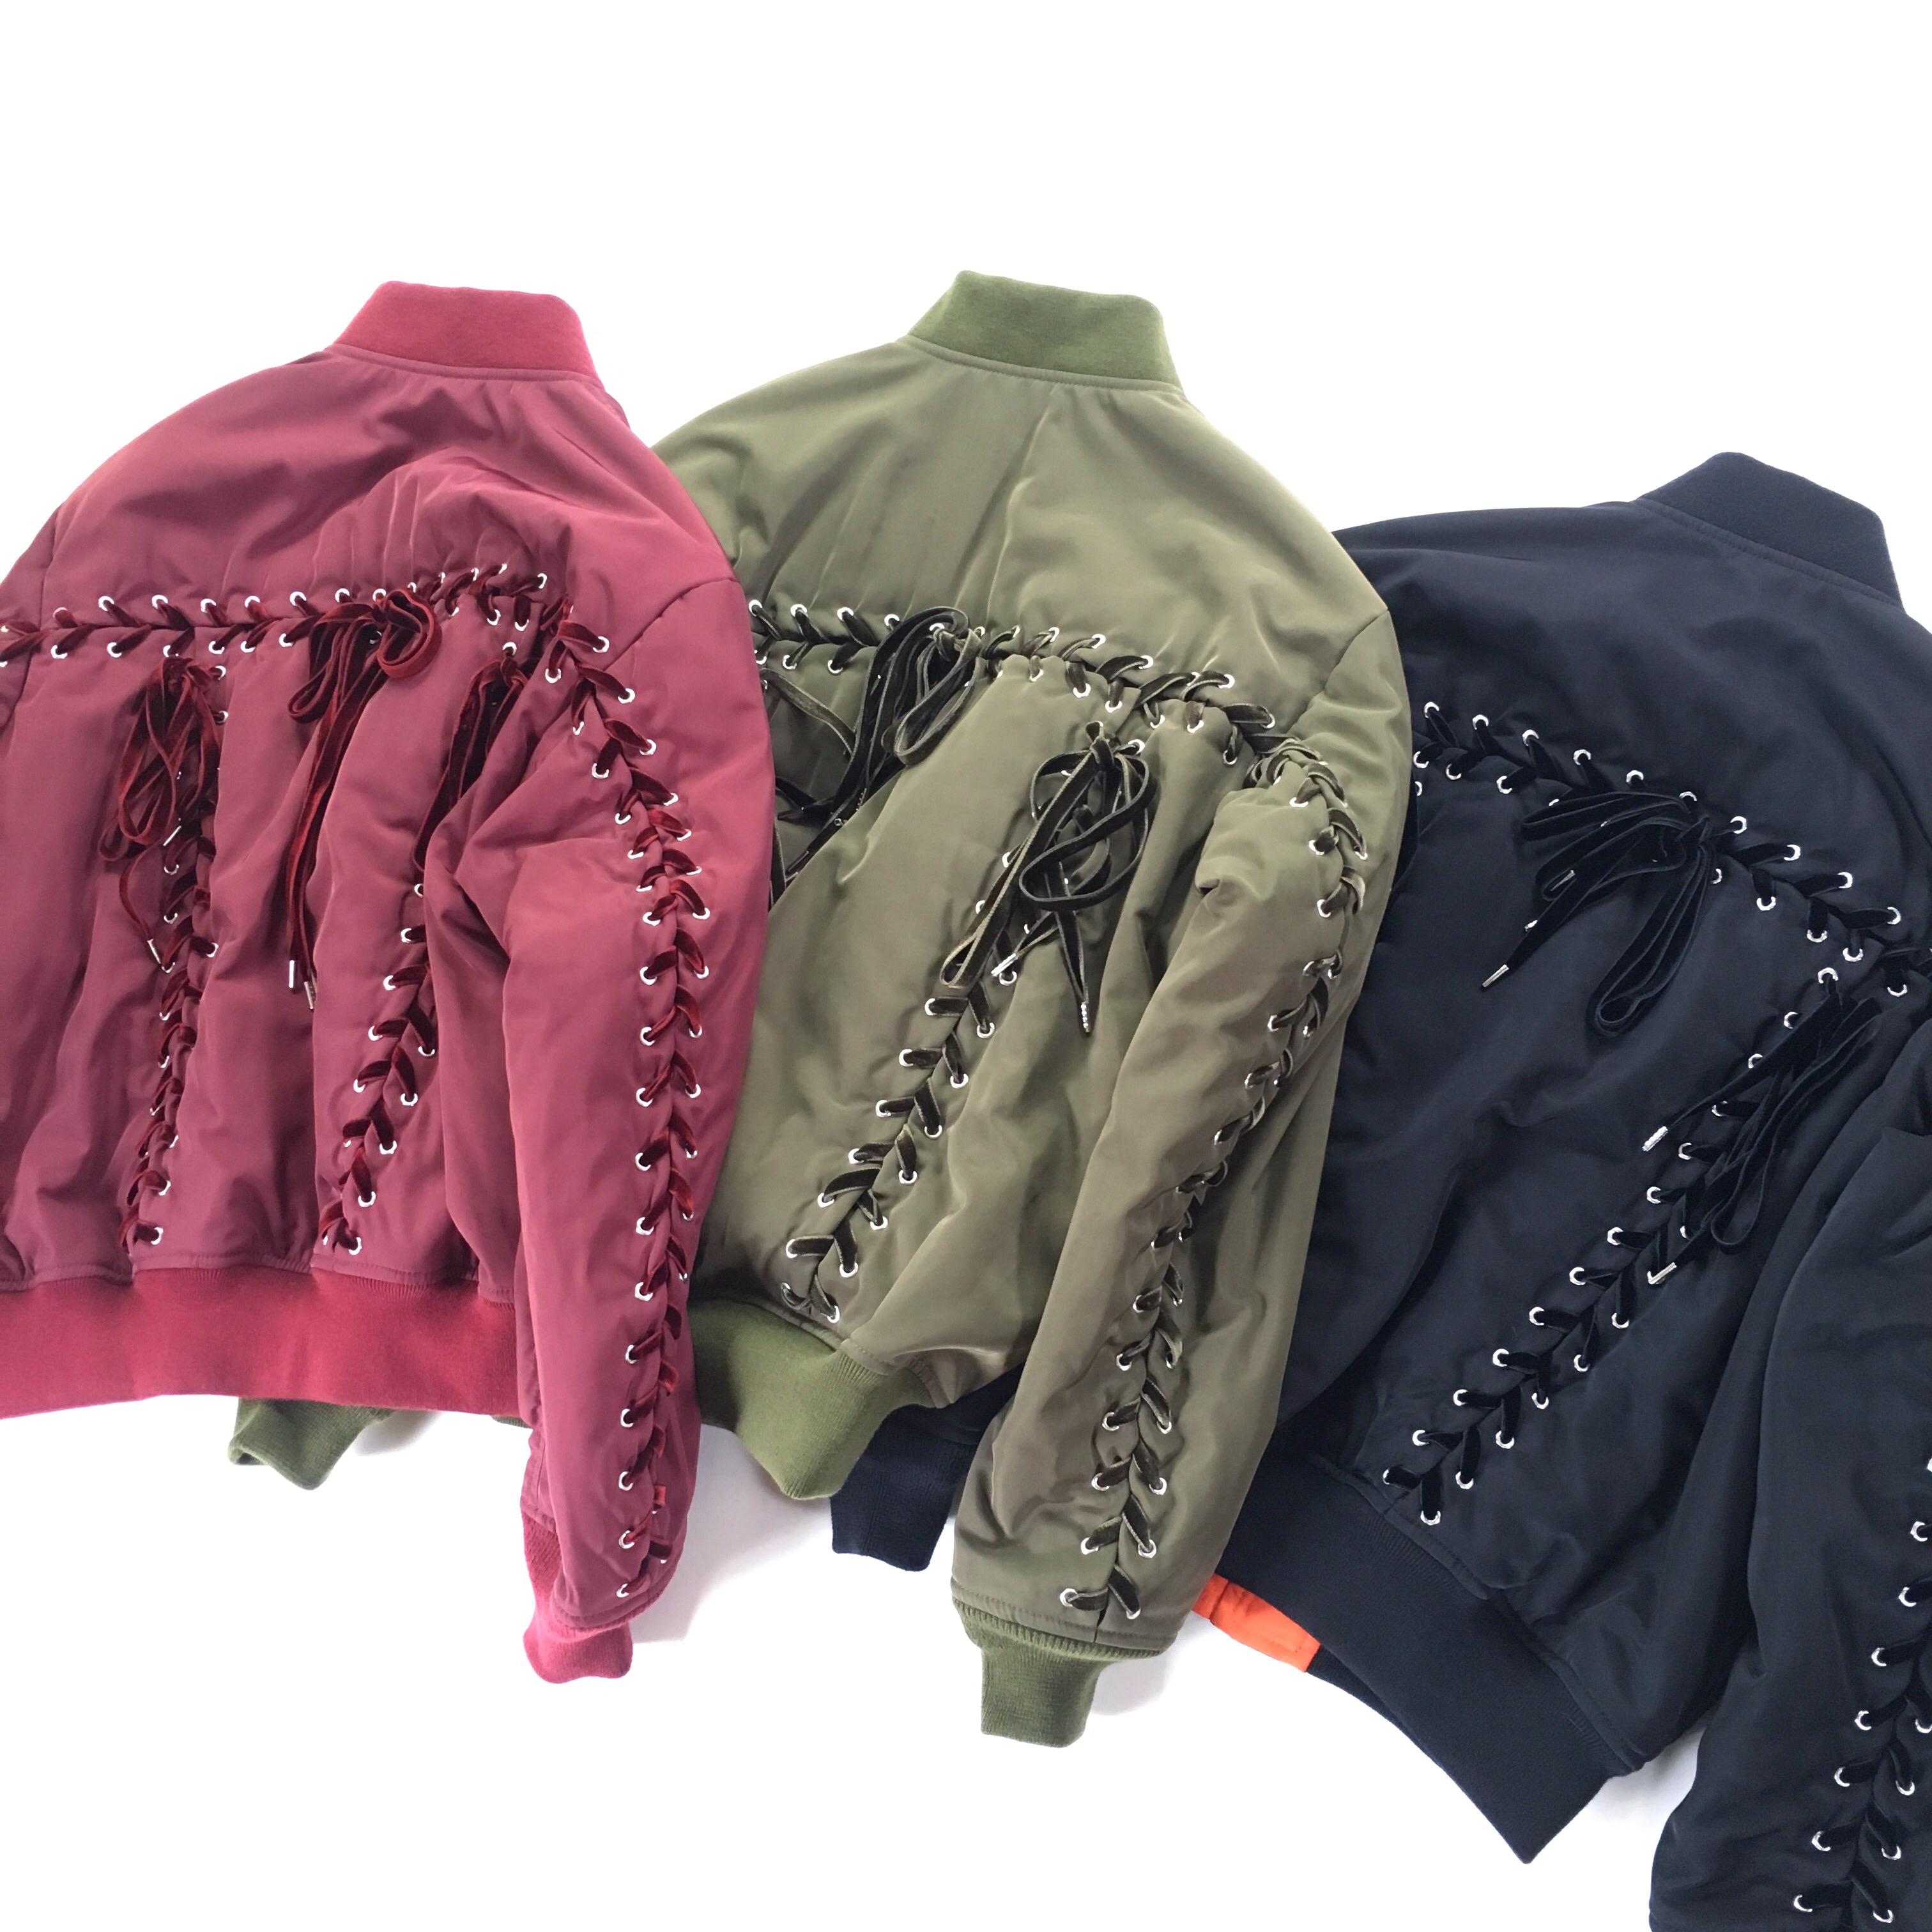 【G.V.G.V.】 LACE UP MA-1 BLOUSON 発売  !!